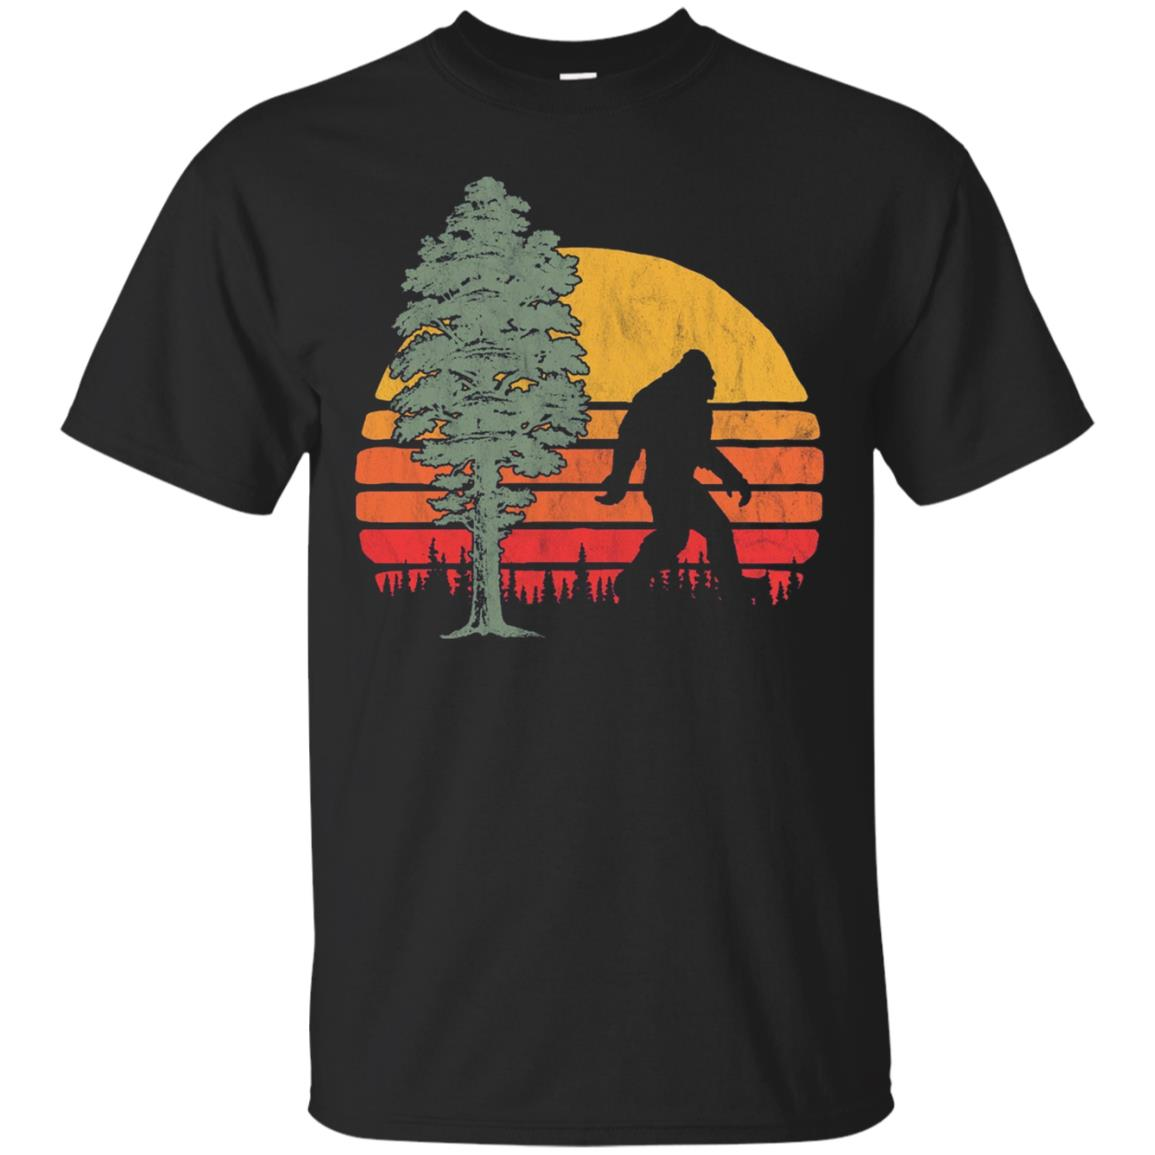 Retro Bigfoot Silhouette & Sequoia T-Shirt - Believe!